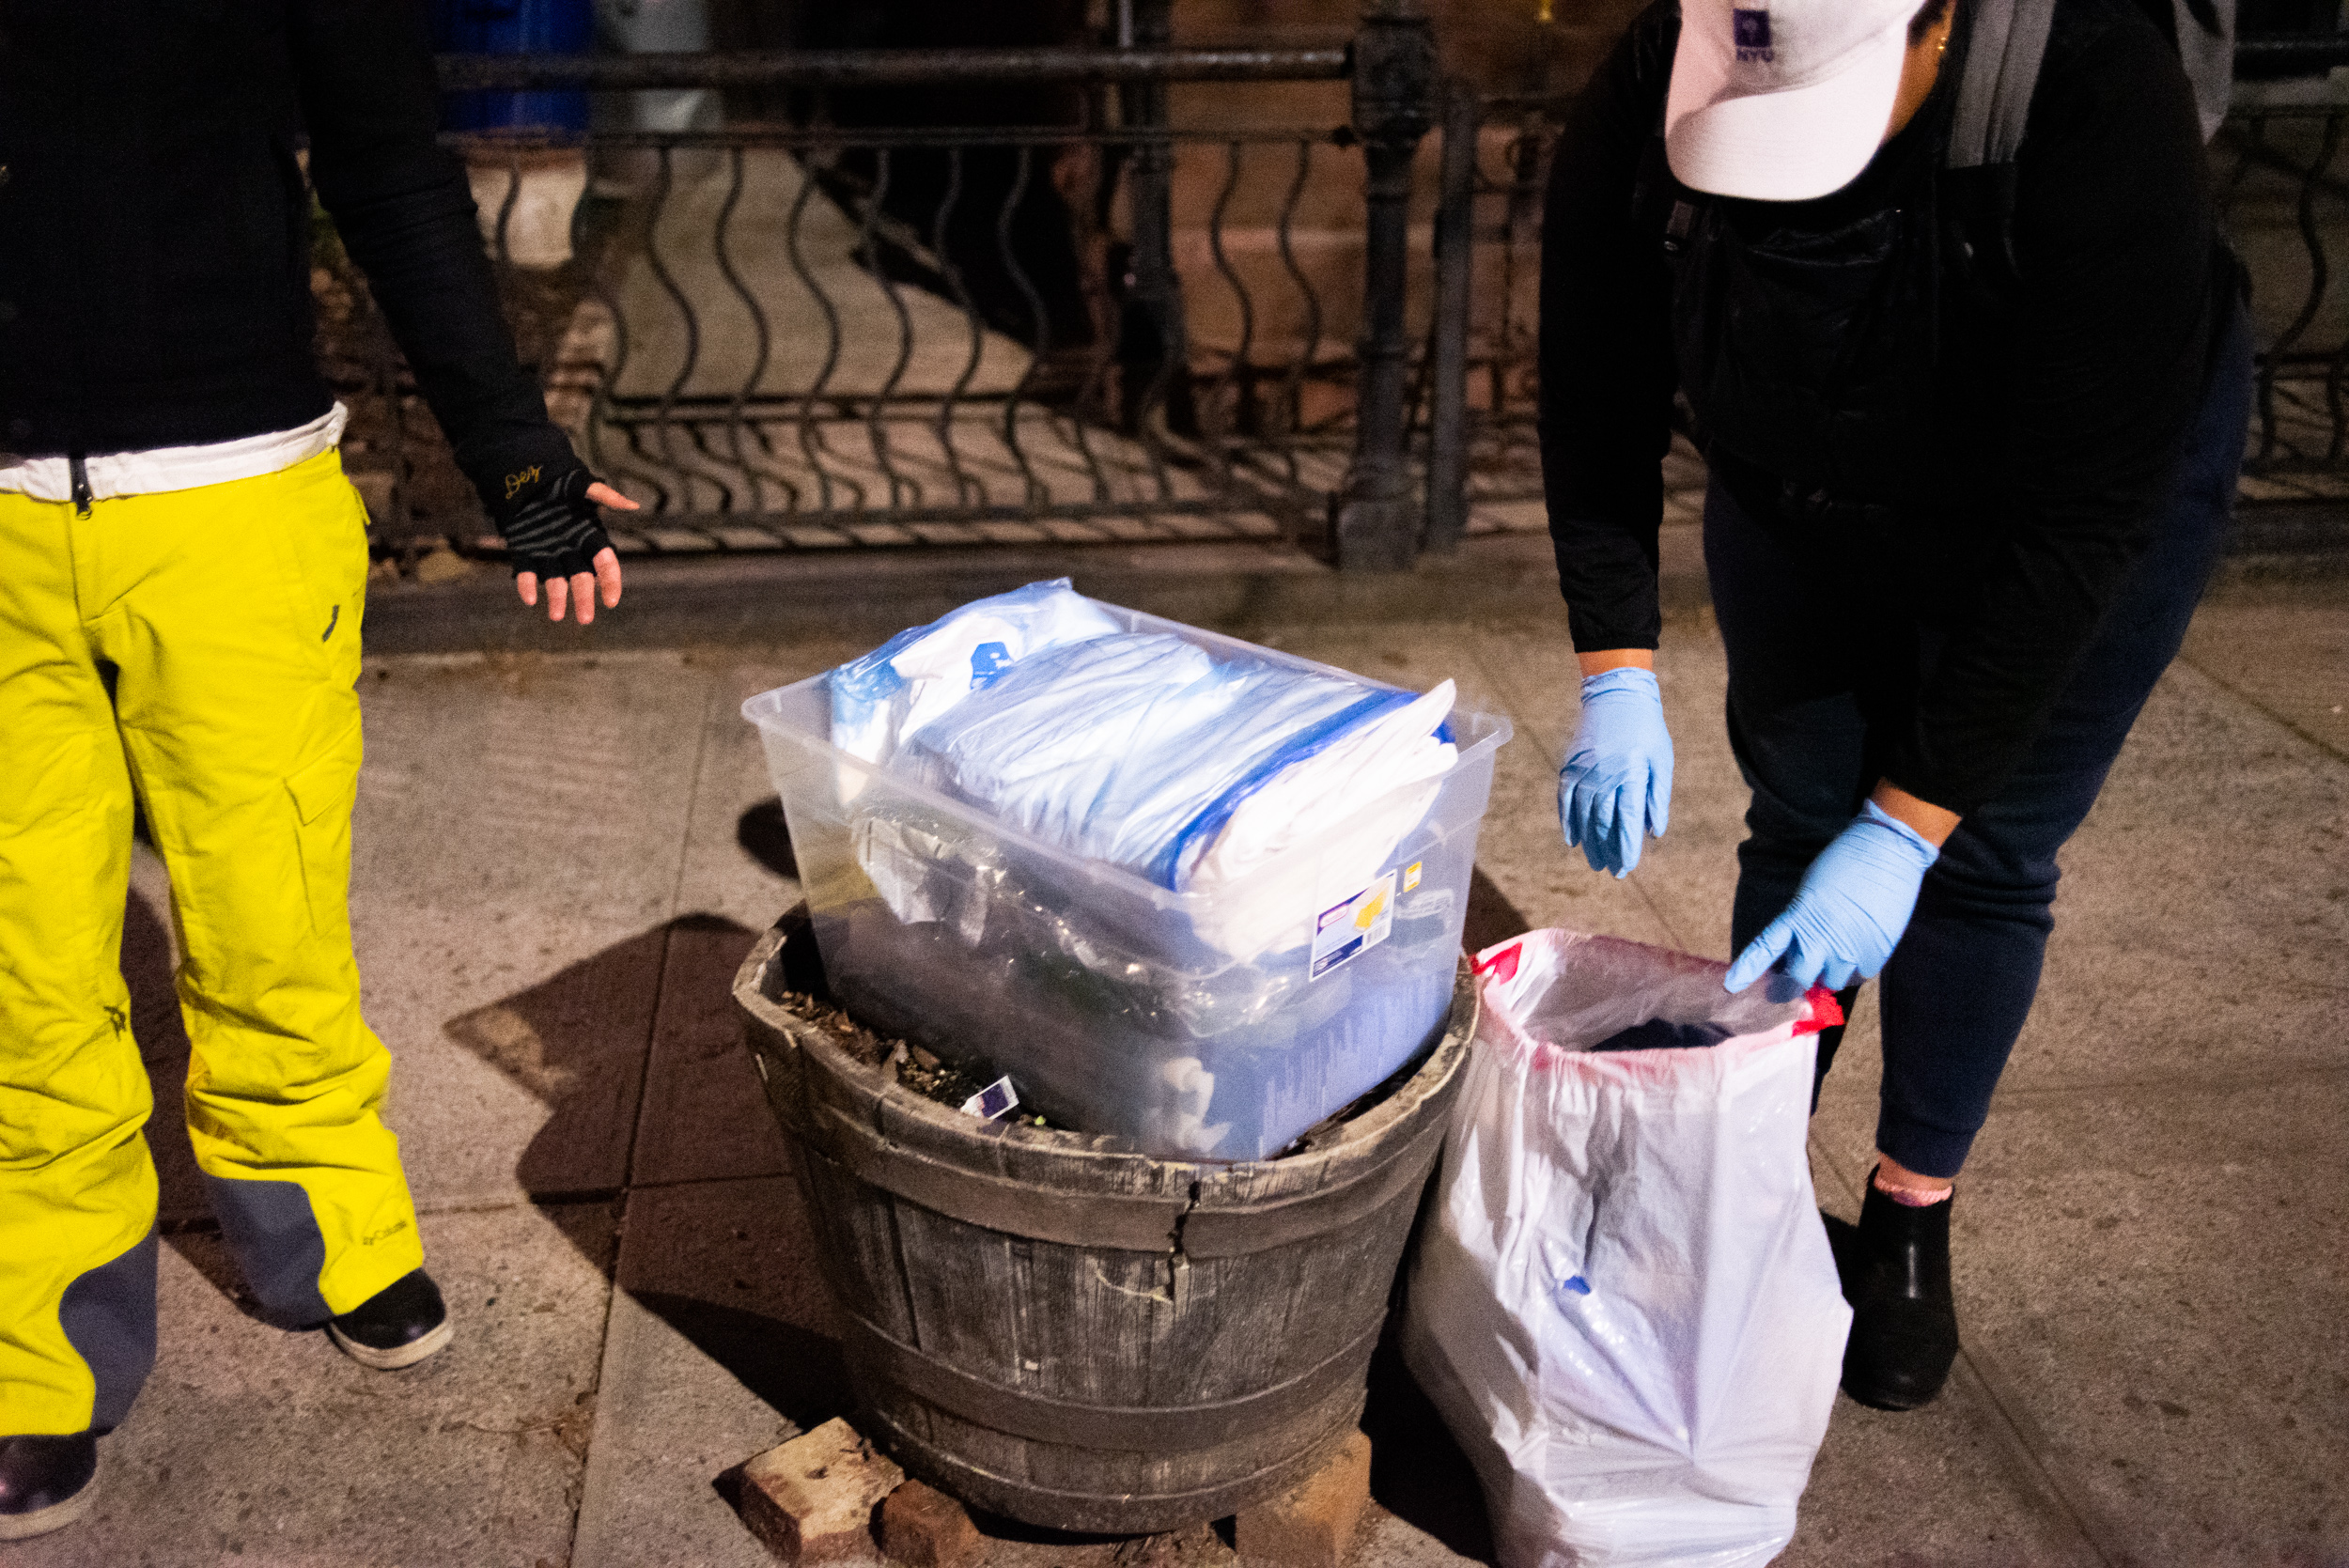 A delivery of personal protective equipment on a sidewalk in Brooklyn, New York.